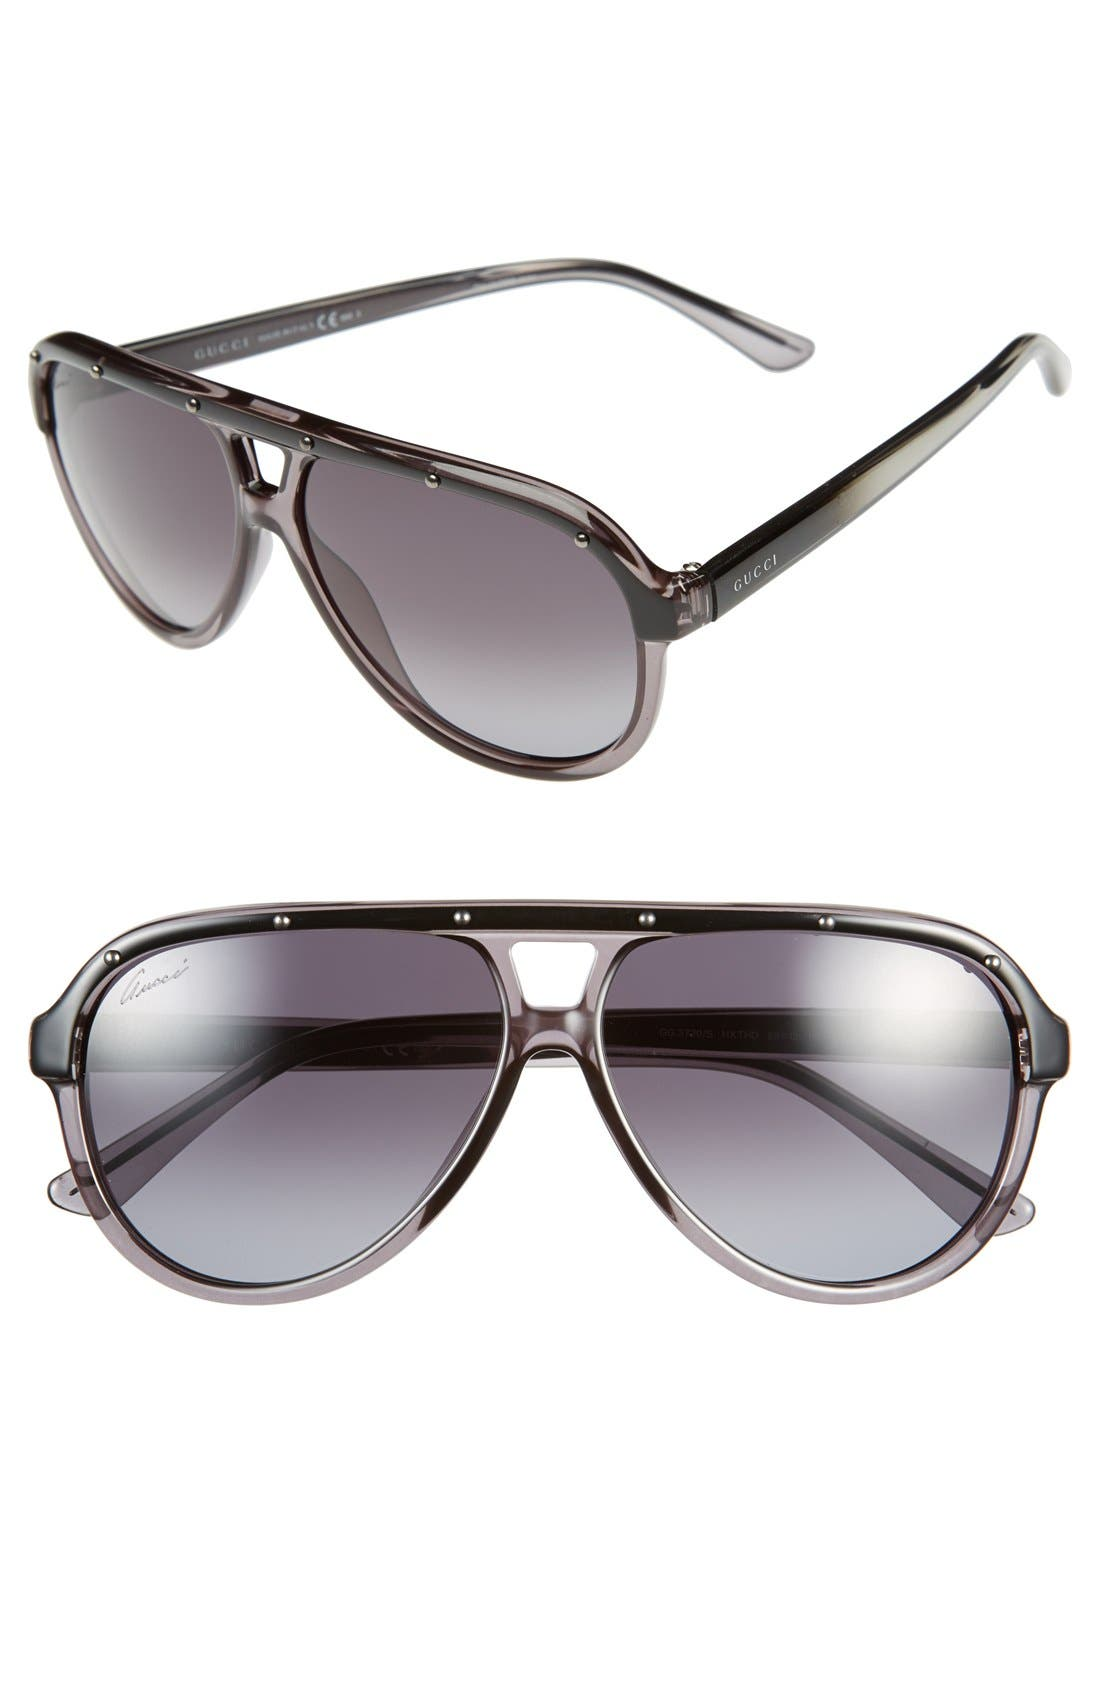 Main Image - Gucci 59mm Aviator Sunglasses